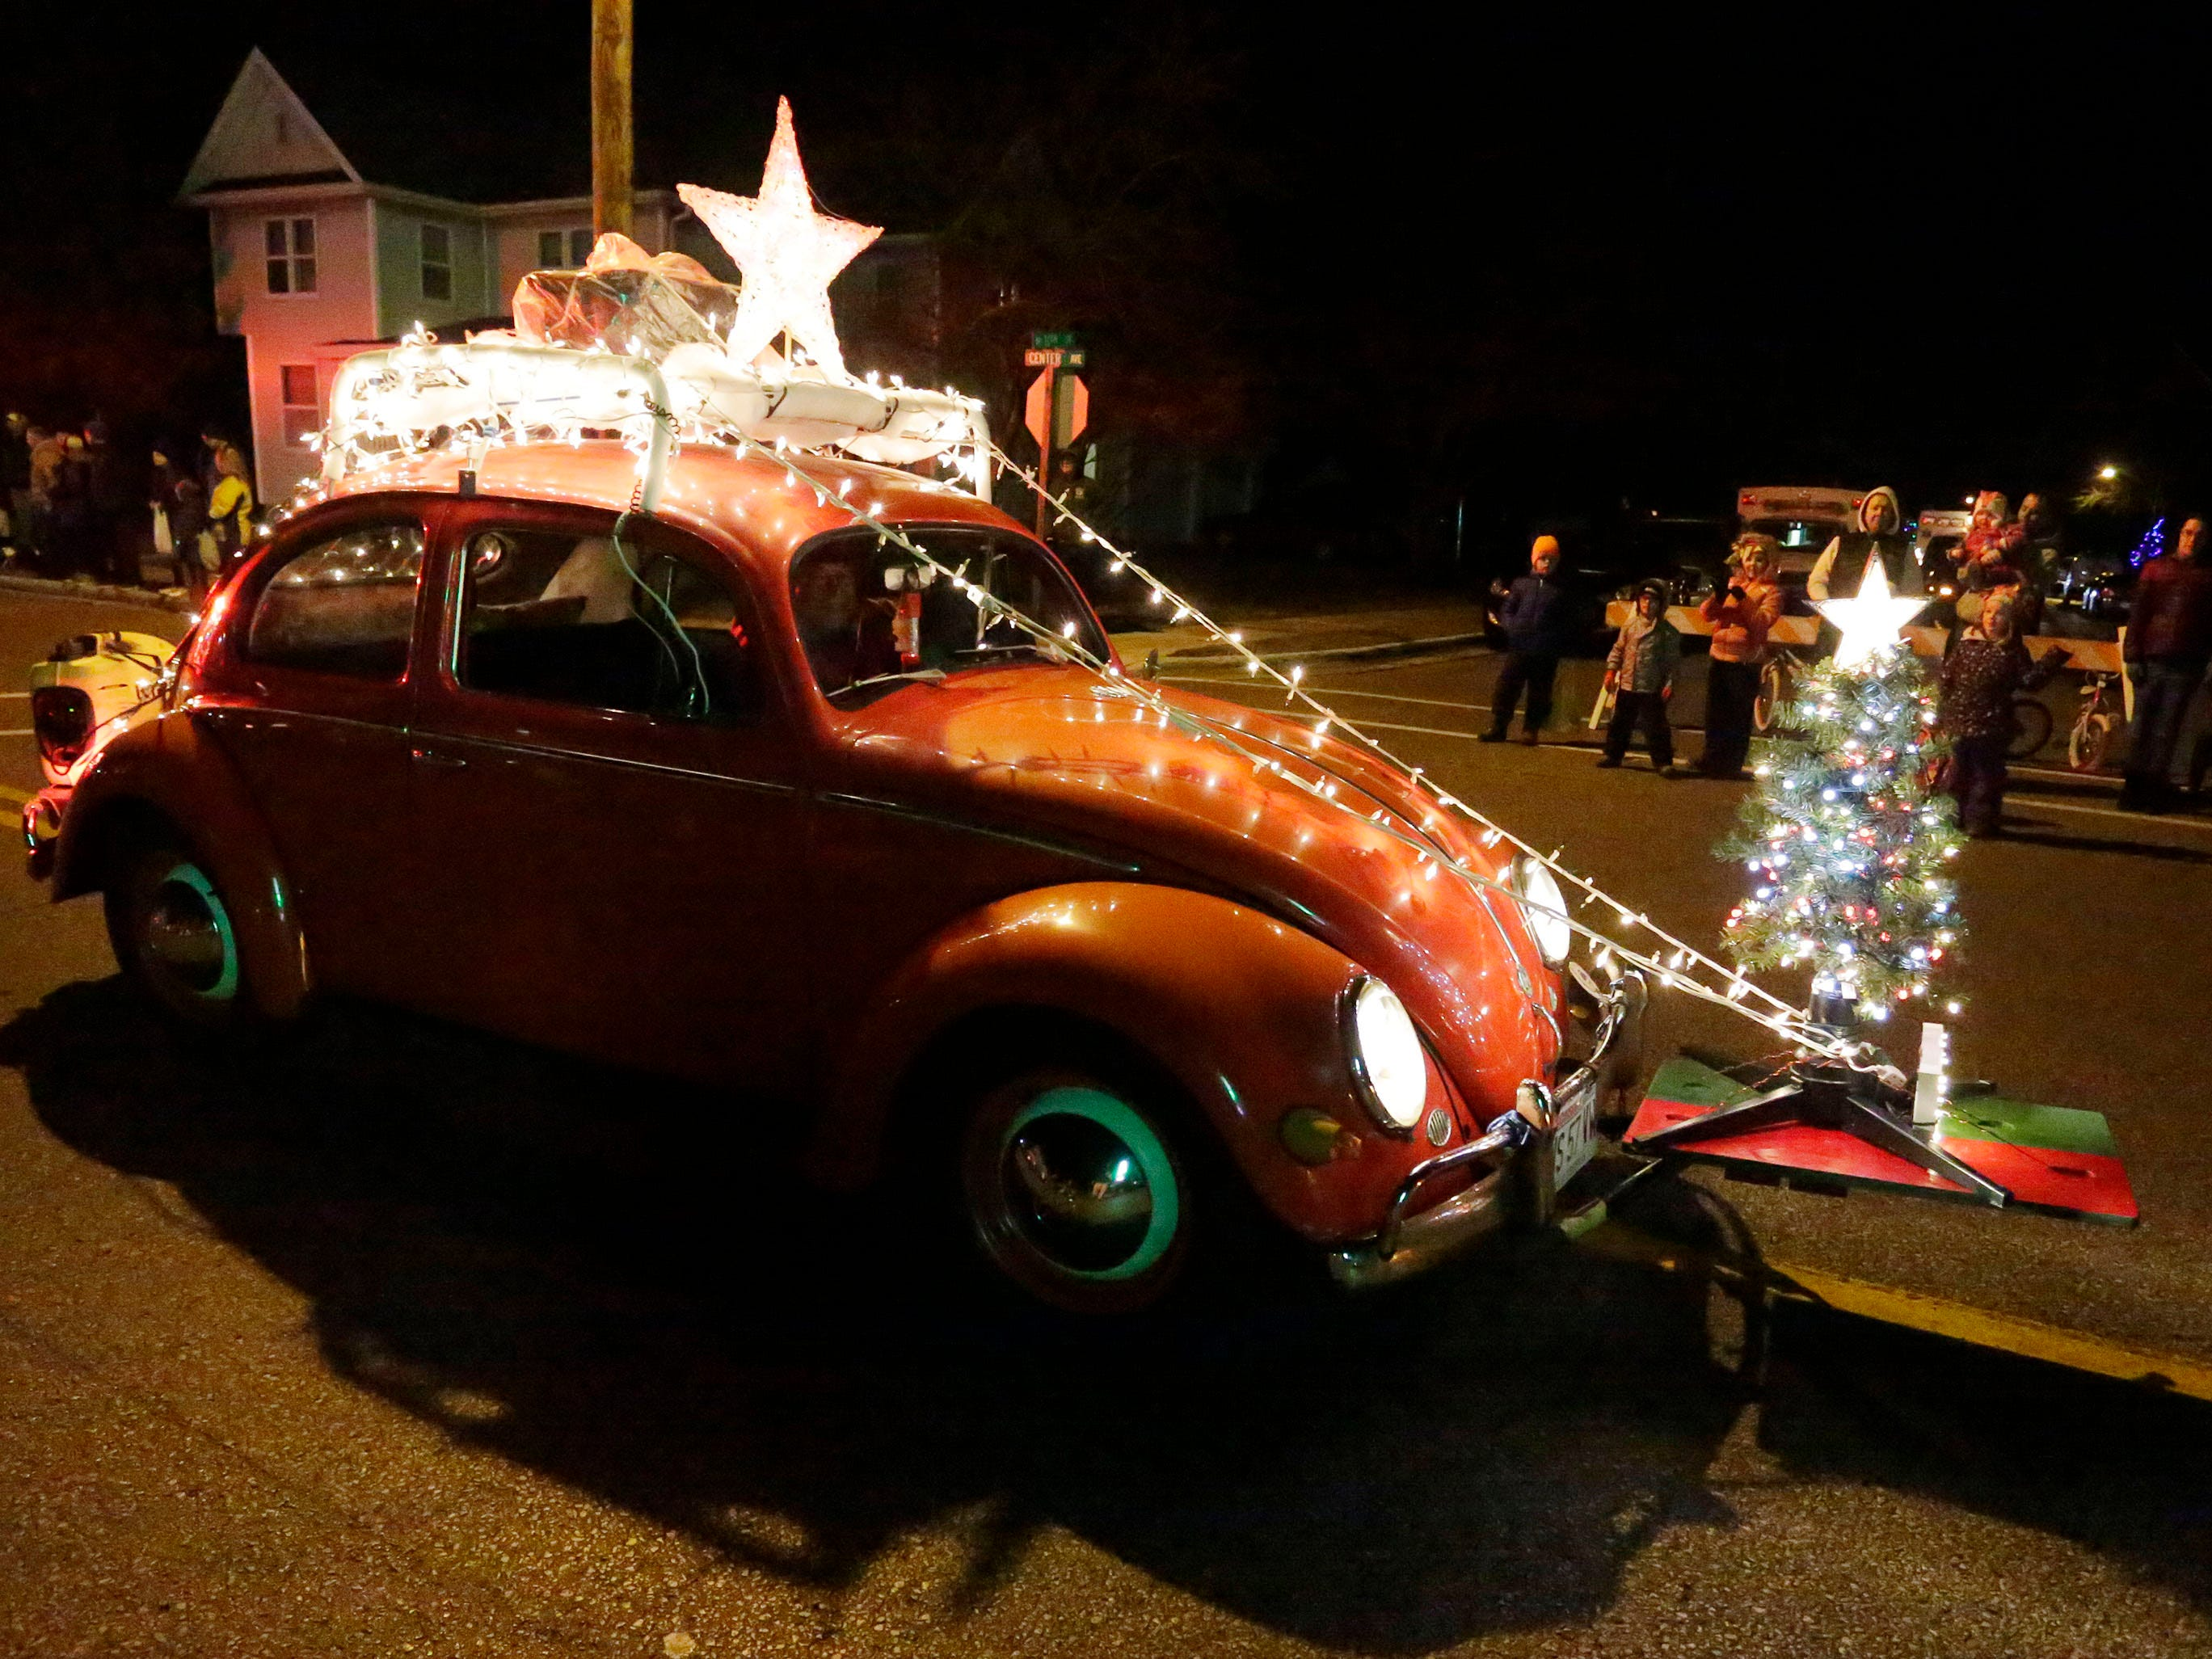 David Weinhold of Sheboygan Falls, Wis. drives his well lit Volkswagen Beetle during the Oostburg Christmas Parade, Saturday, November 24, 2018, in Oostburg, Wis.